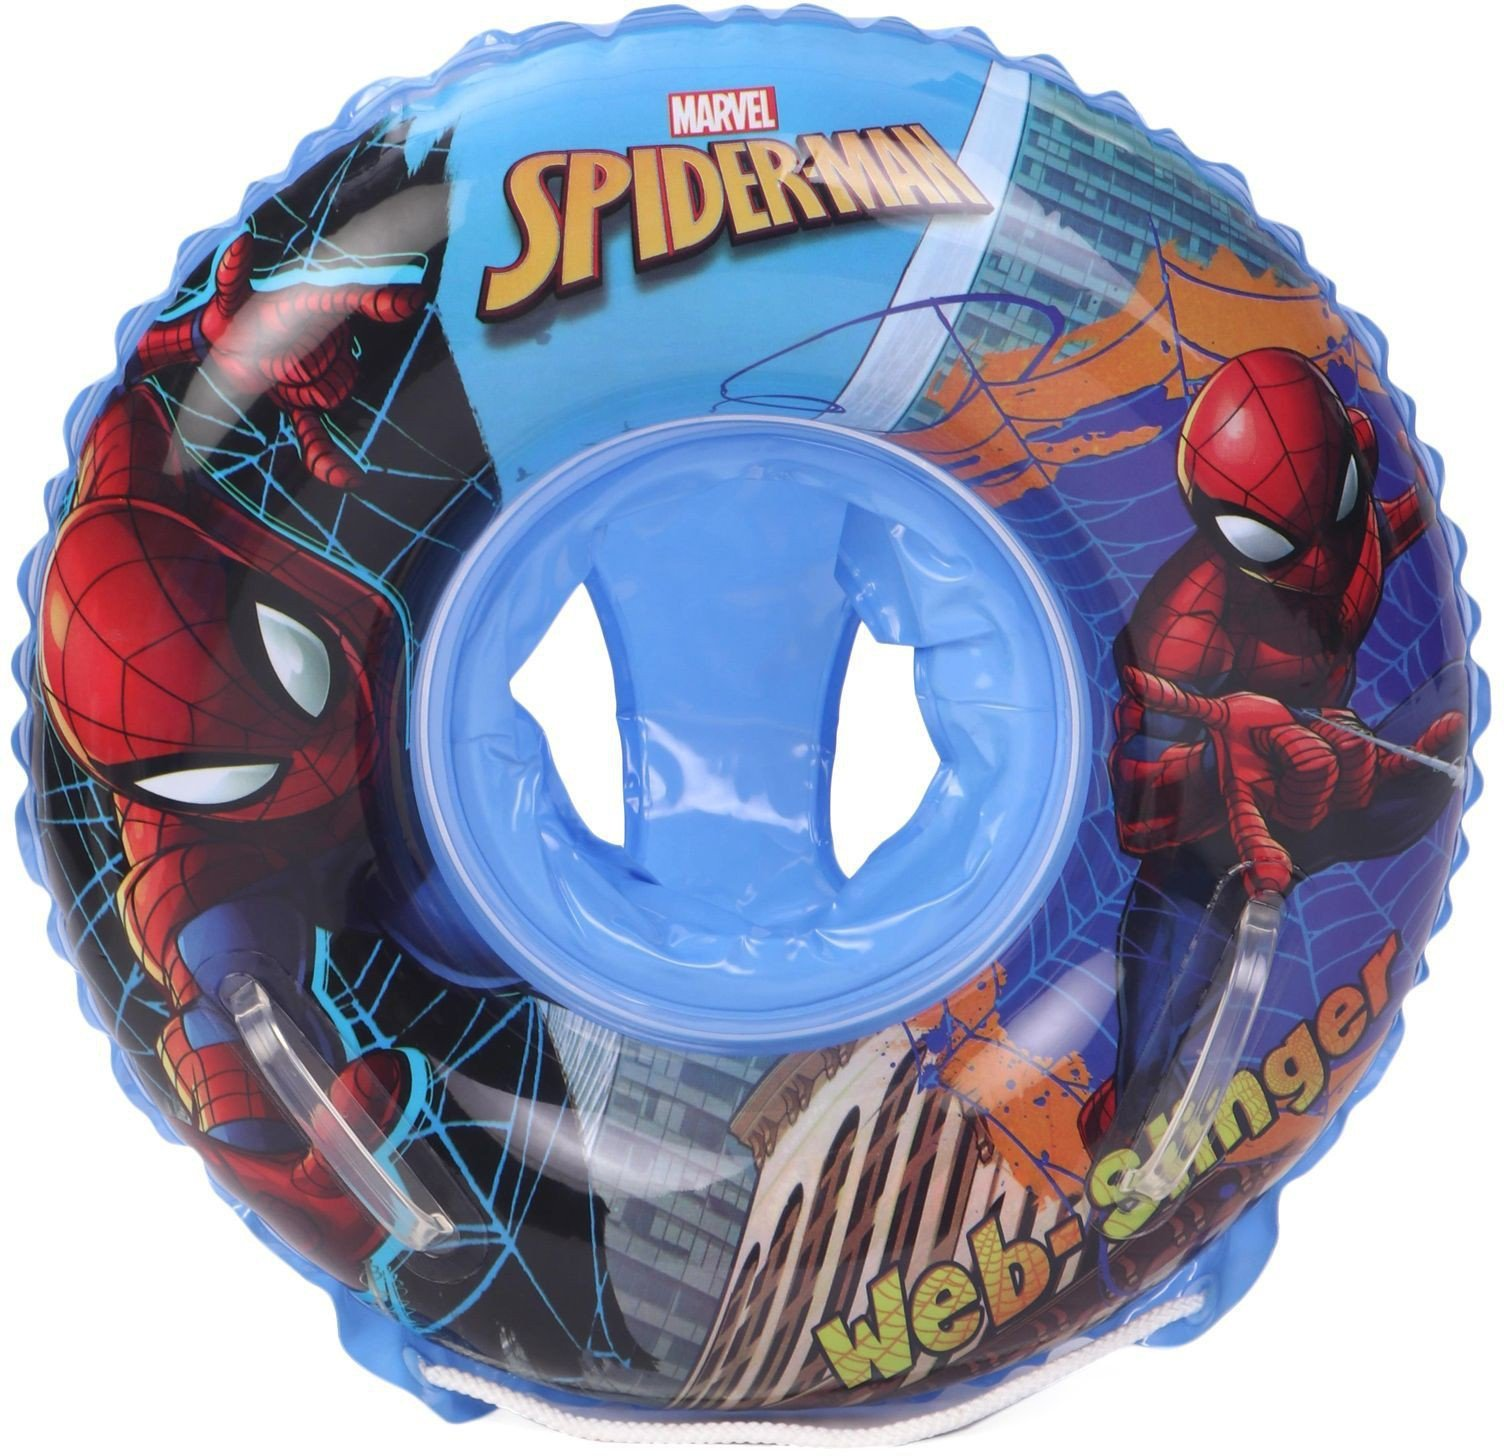 Spiderman Swimming Ring with Seat Swimming